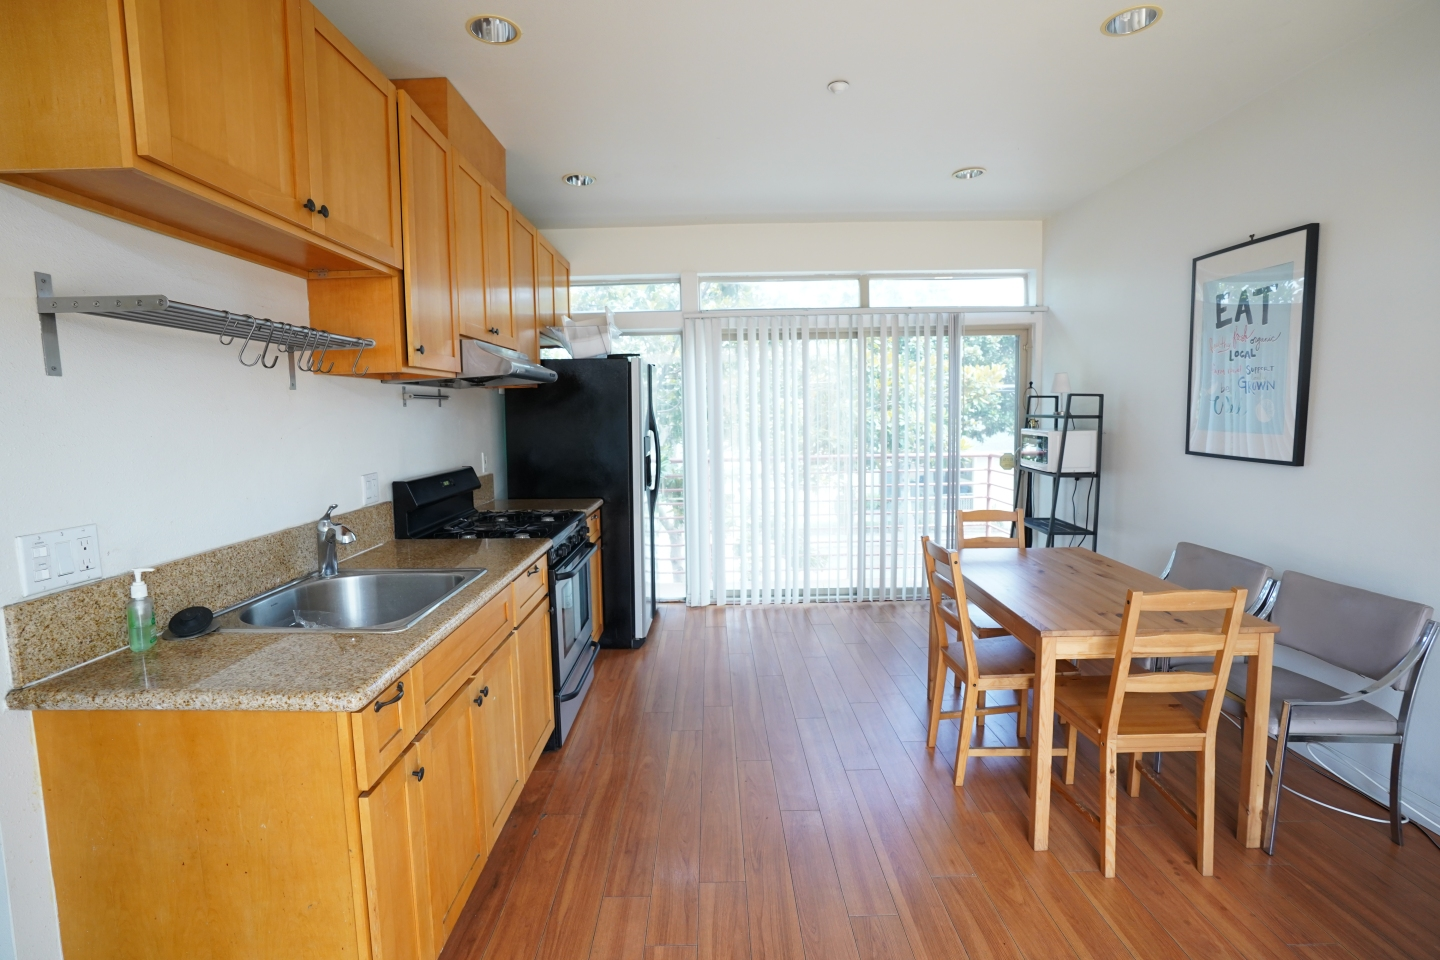 side view of kitchen, brown hardwood floors, brown cabinets and brown dining table